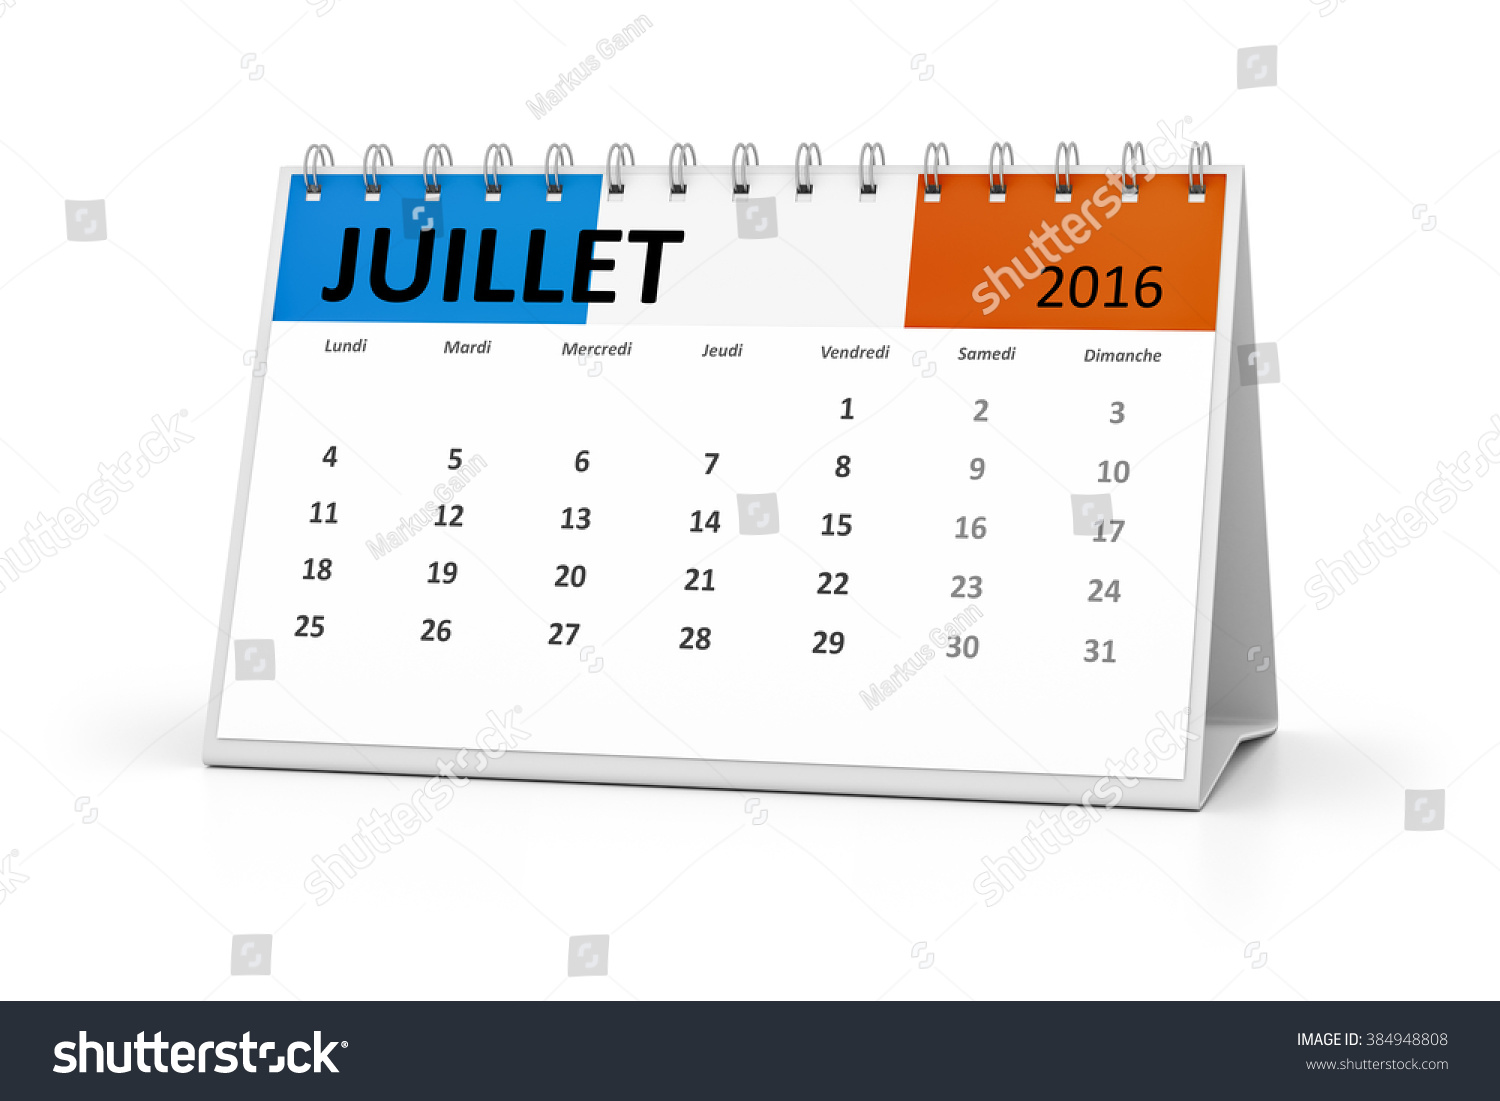 Event Calendar Illustration : French language table calendar your events stock